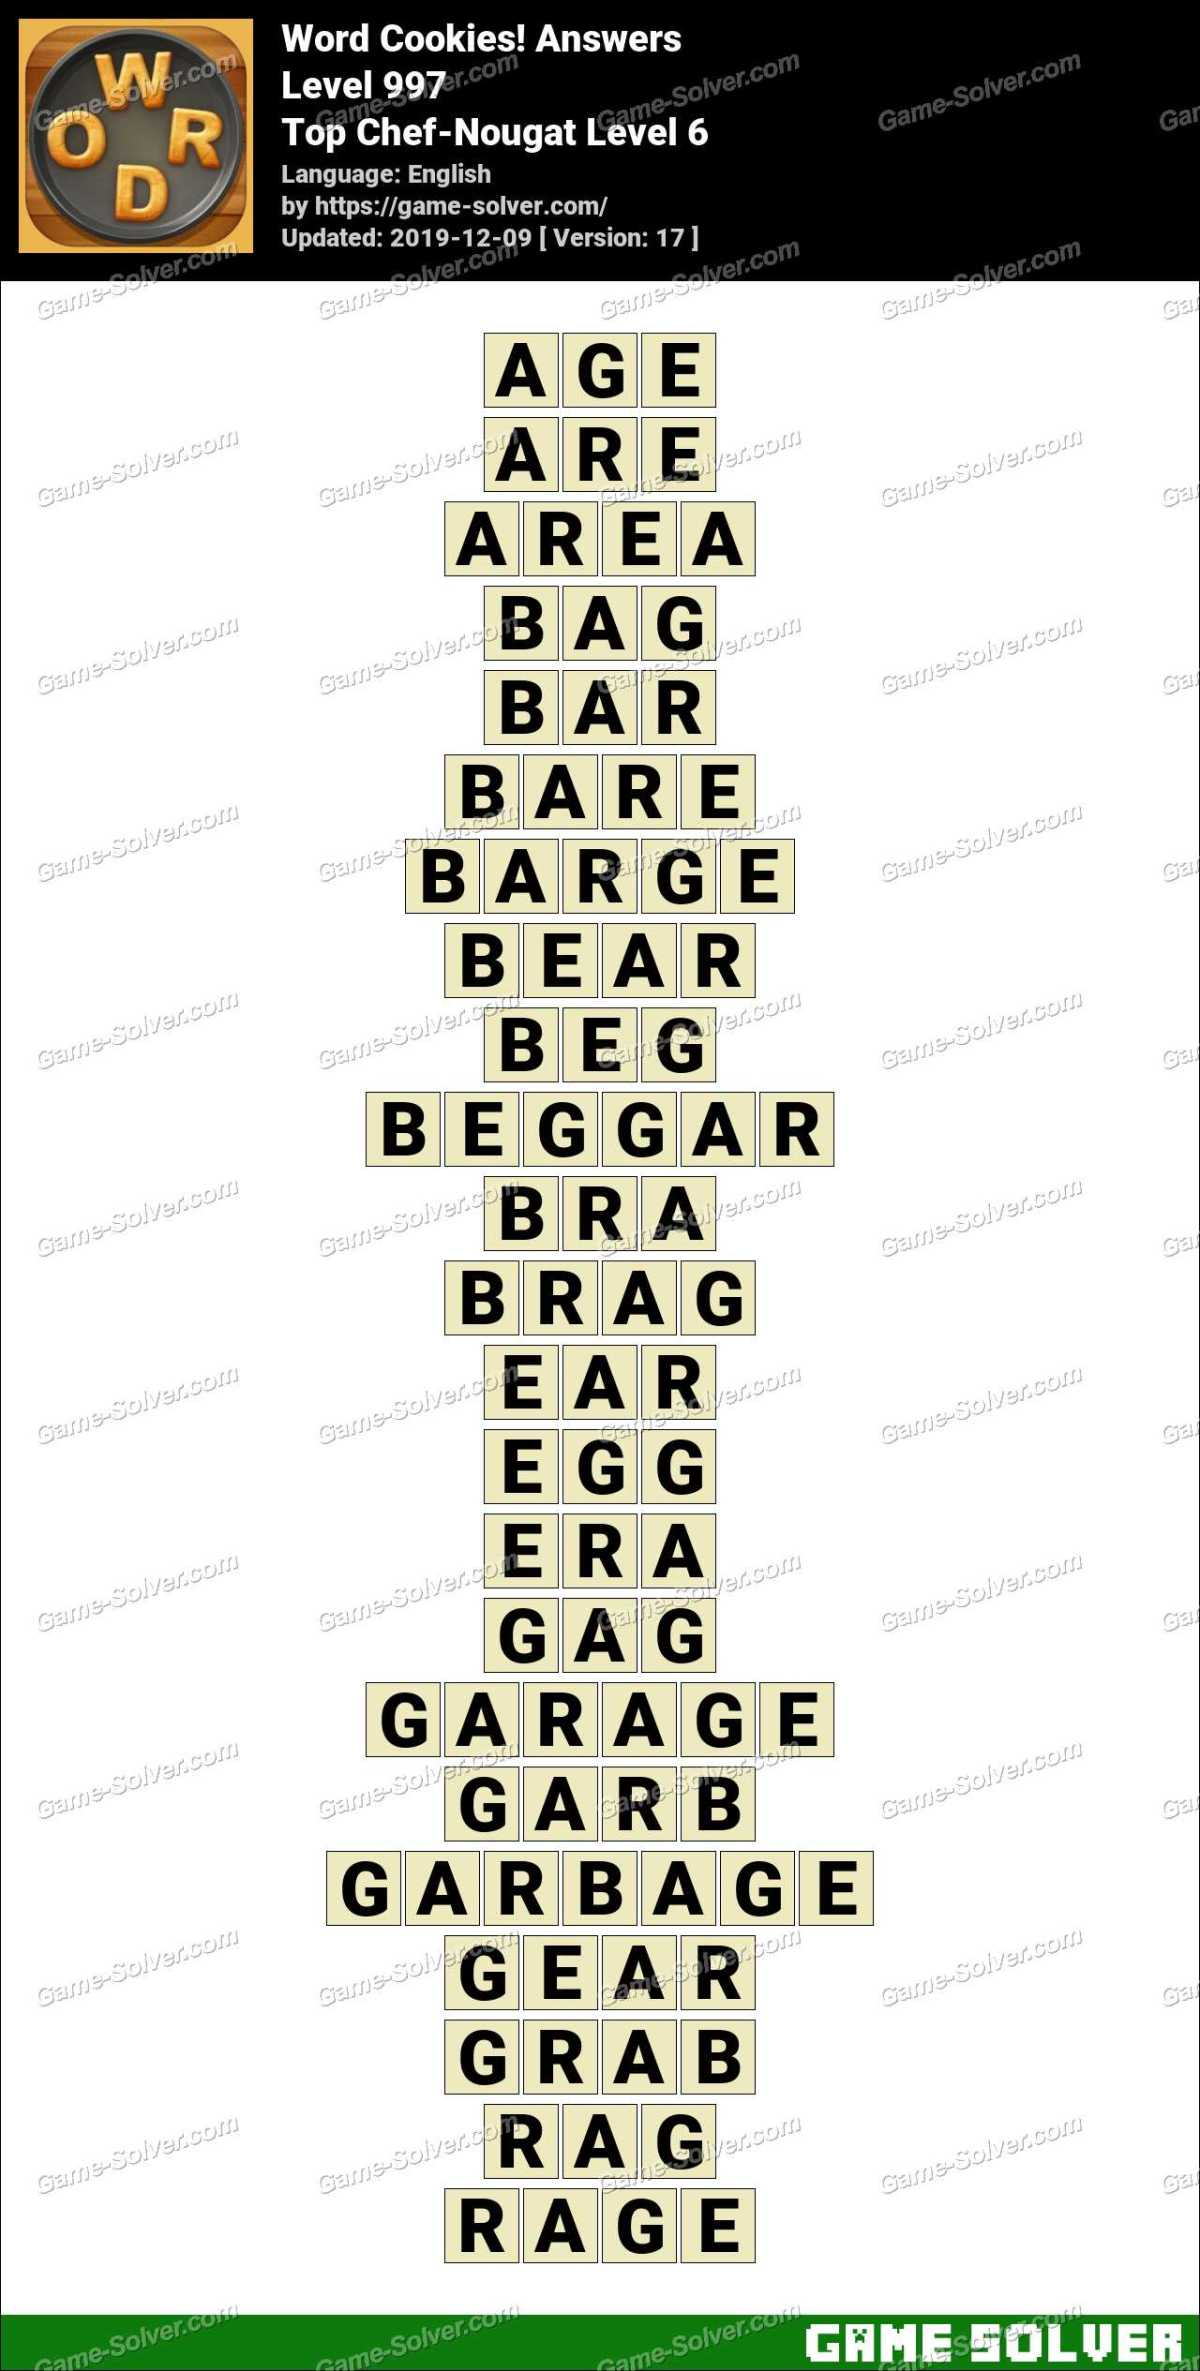 Word Cookies Top Chef-Nougat Level 6 Answers